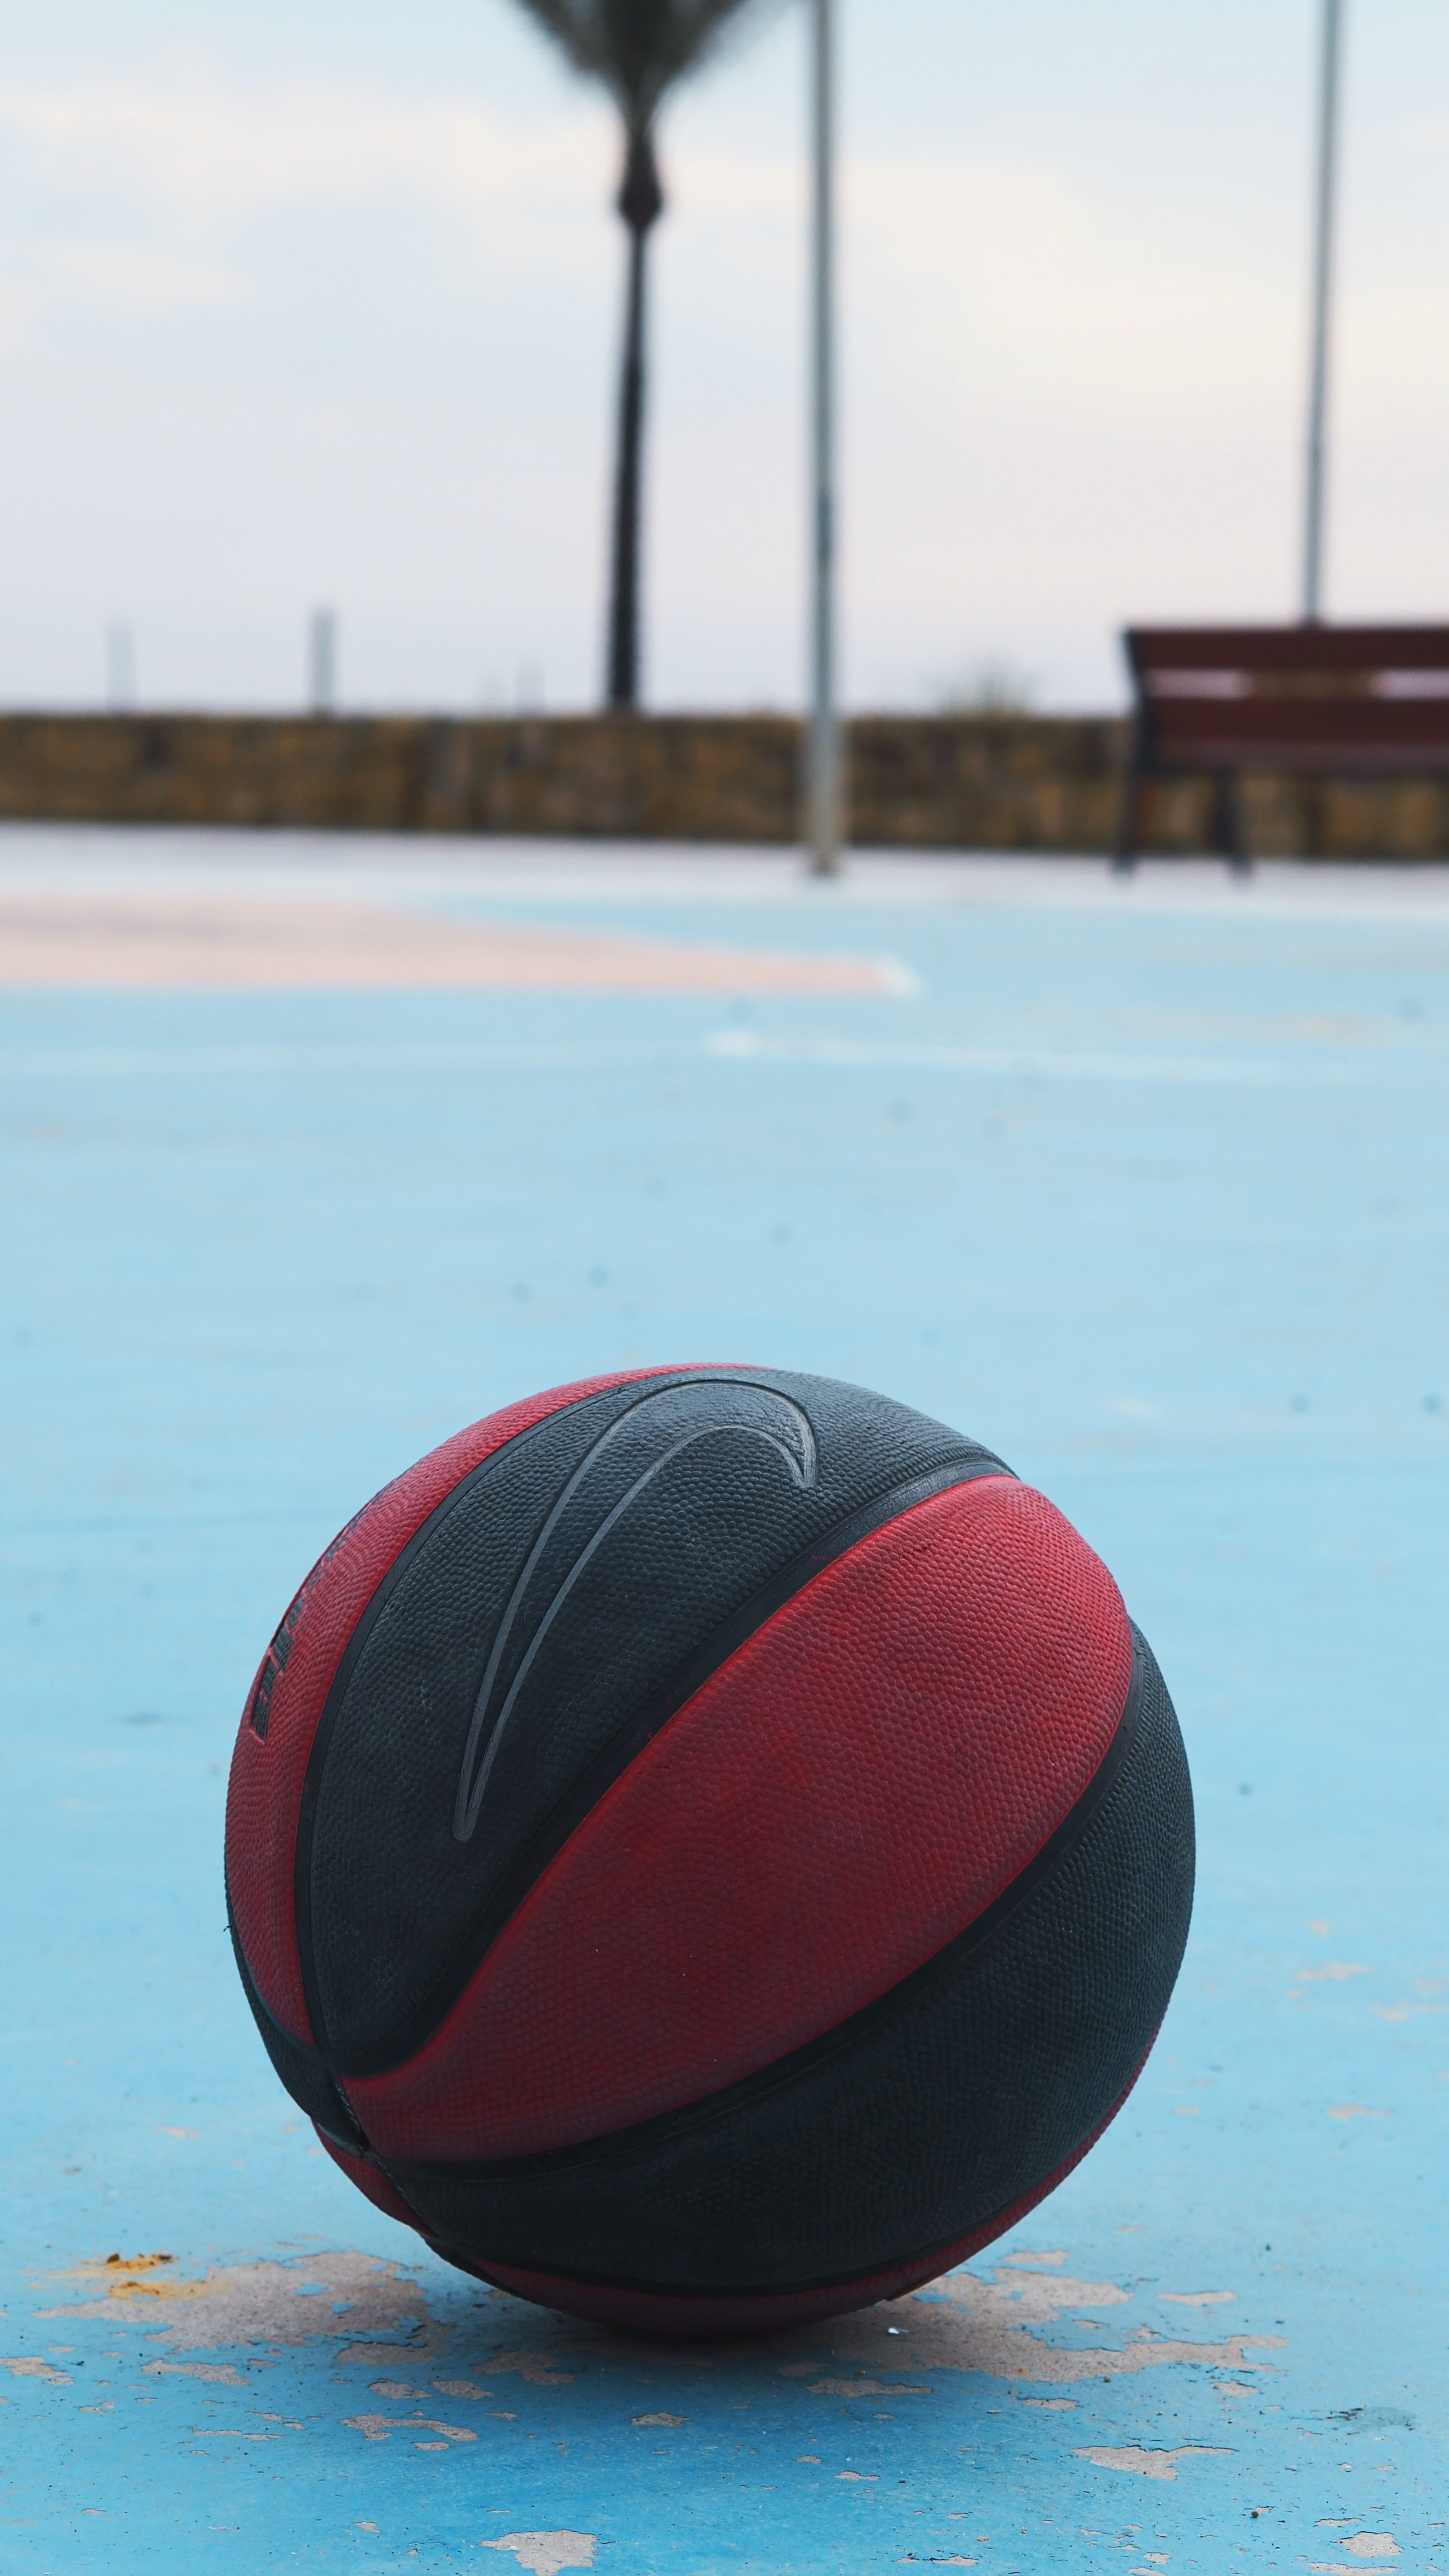 selective focus photo of red and black Nike ball on basketball court